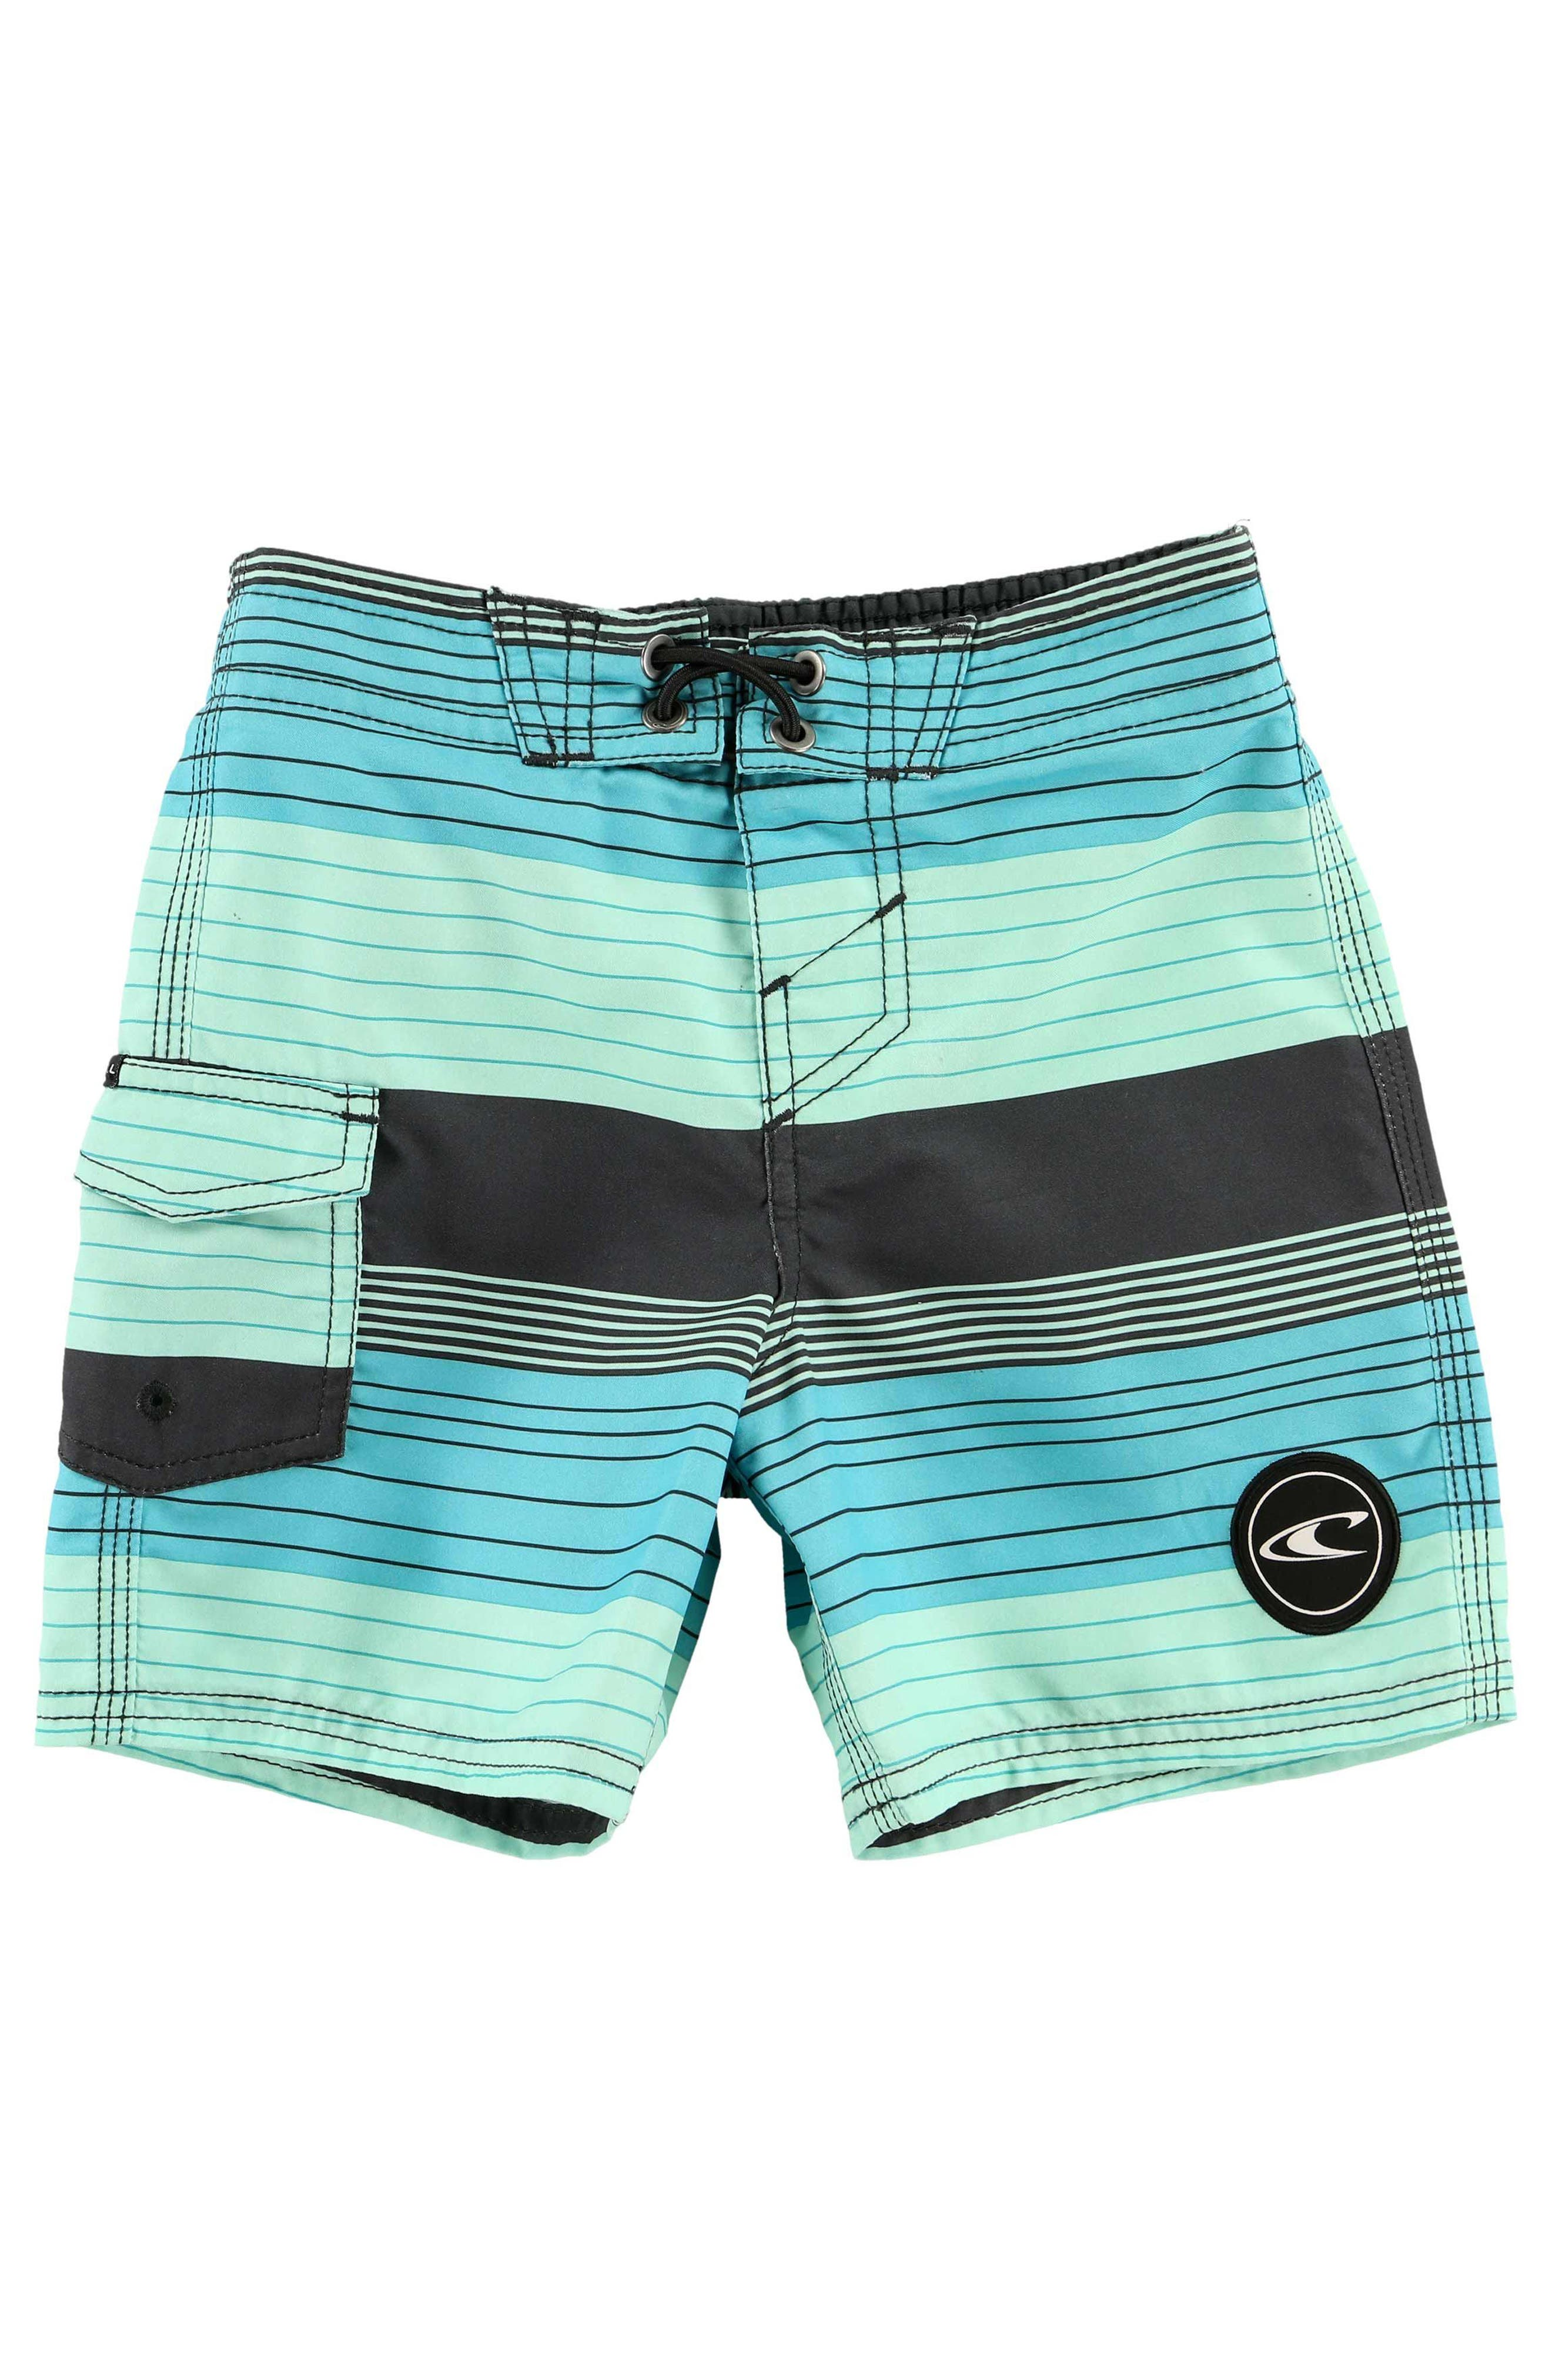 O'NEILL Santa Cruz Stripe Board Shorts